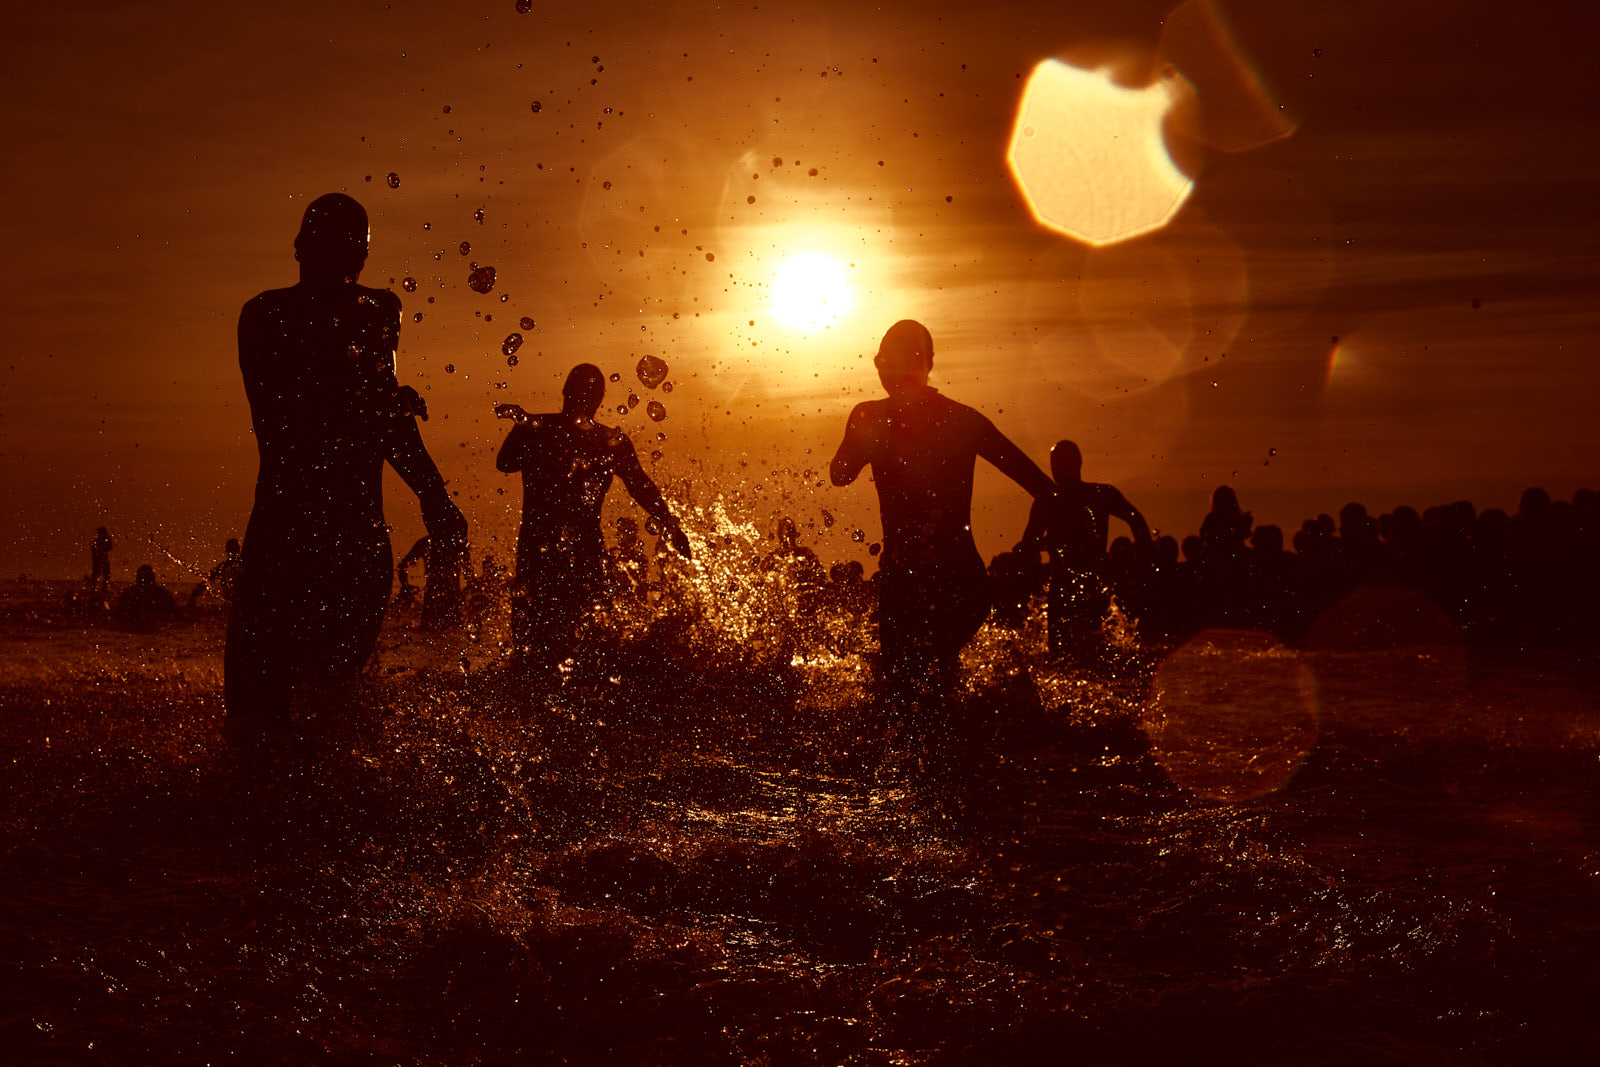 Athletes enter to the water during the rolling start of the Ironman Emilia Romagna swimming course on September 22, 2018 in Cervia, Italy.